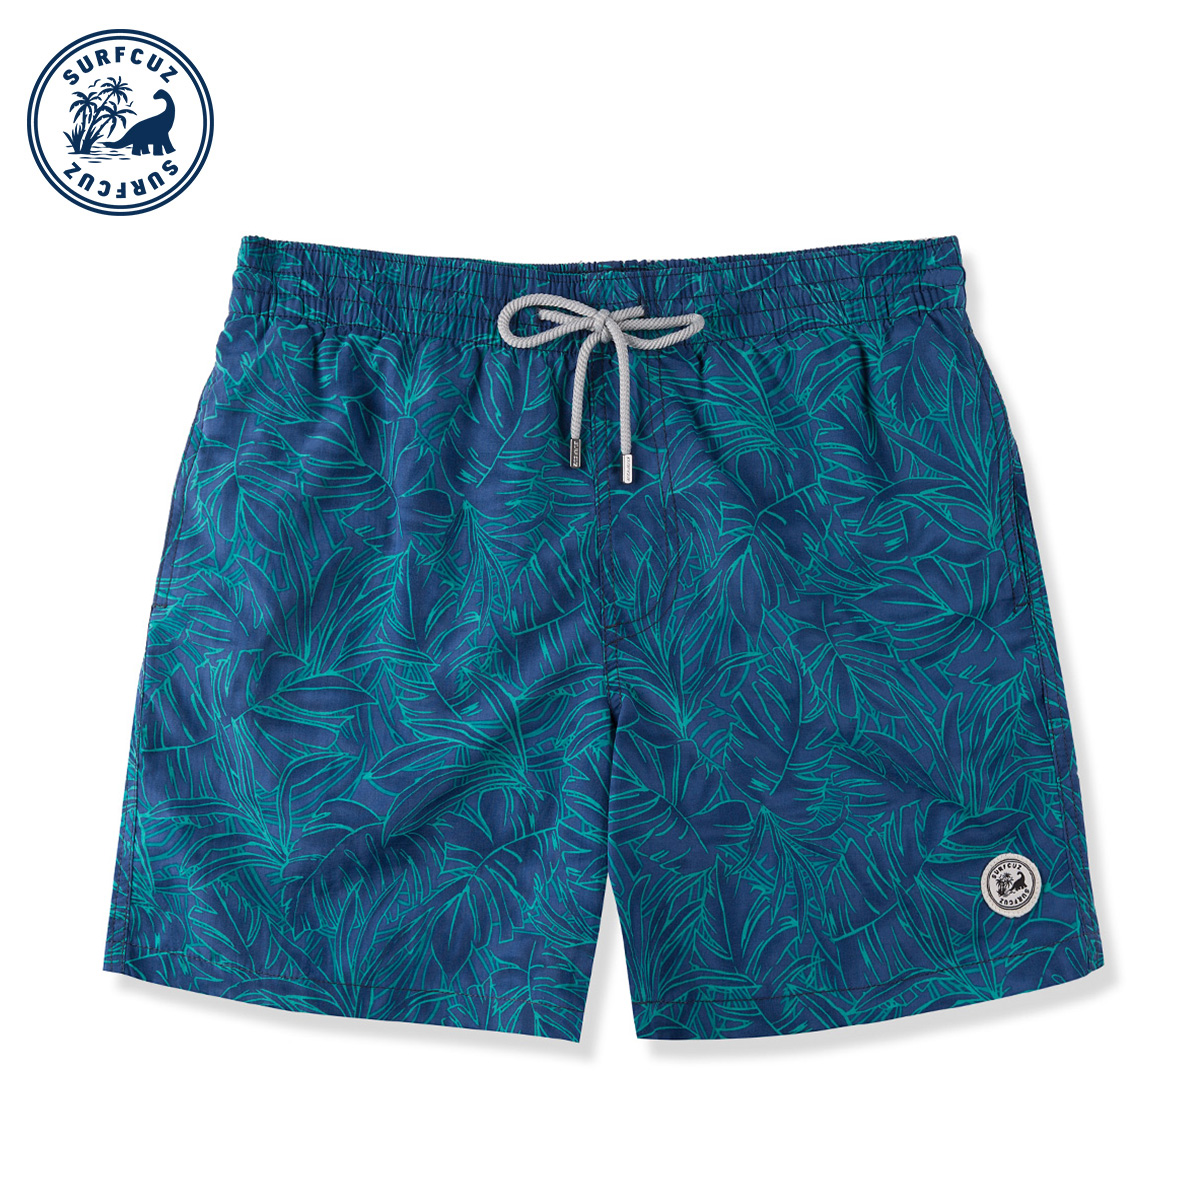 Surfcuz Hot Springs mens casual shorts fast dry loose-fitting large size seaside vacation can go under the water beach swimming trunks men